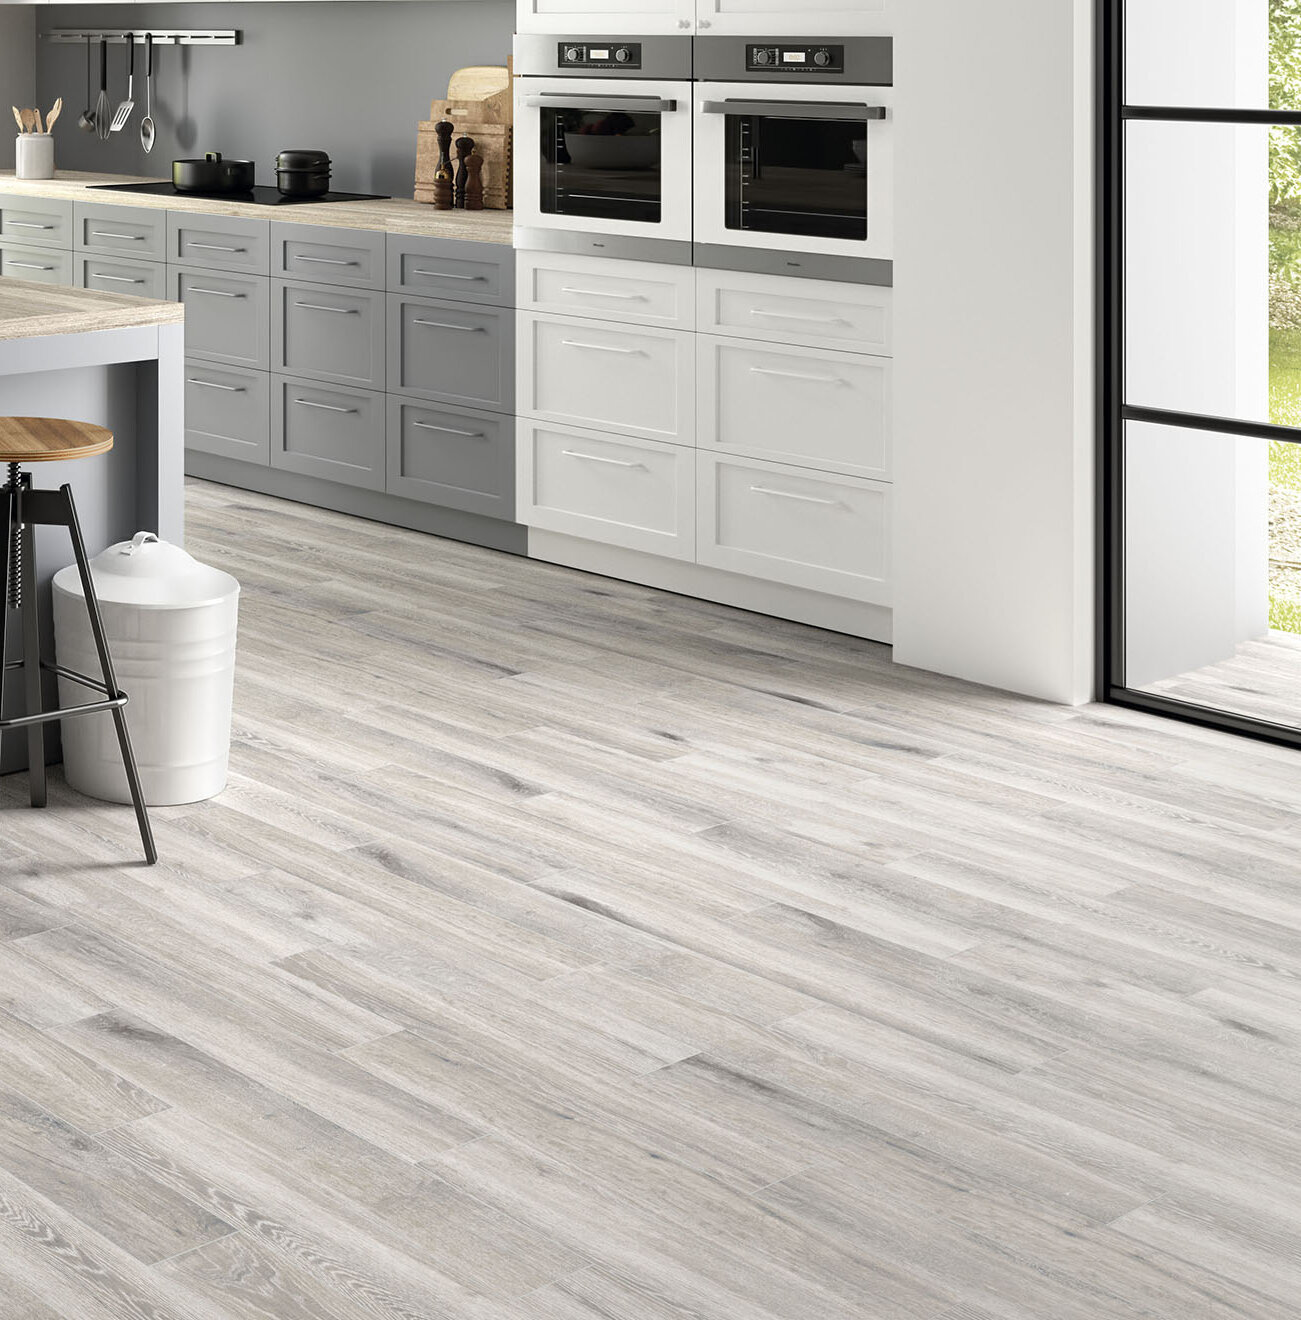 Antoni Platinum 6 X 36 Porcelain Wood Look Tile In Gray